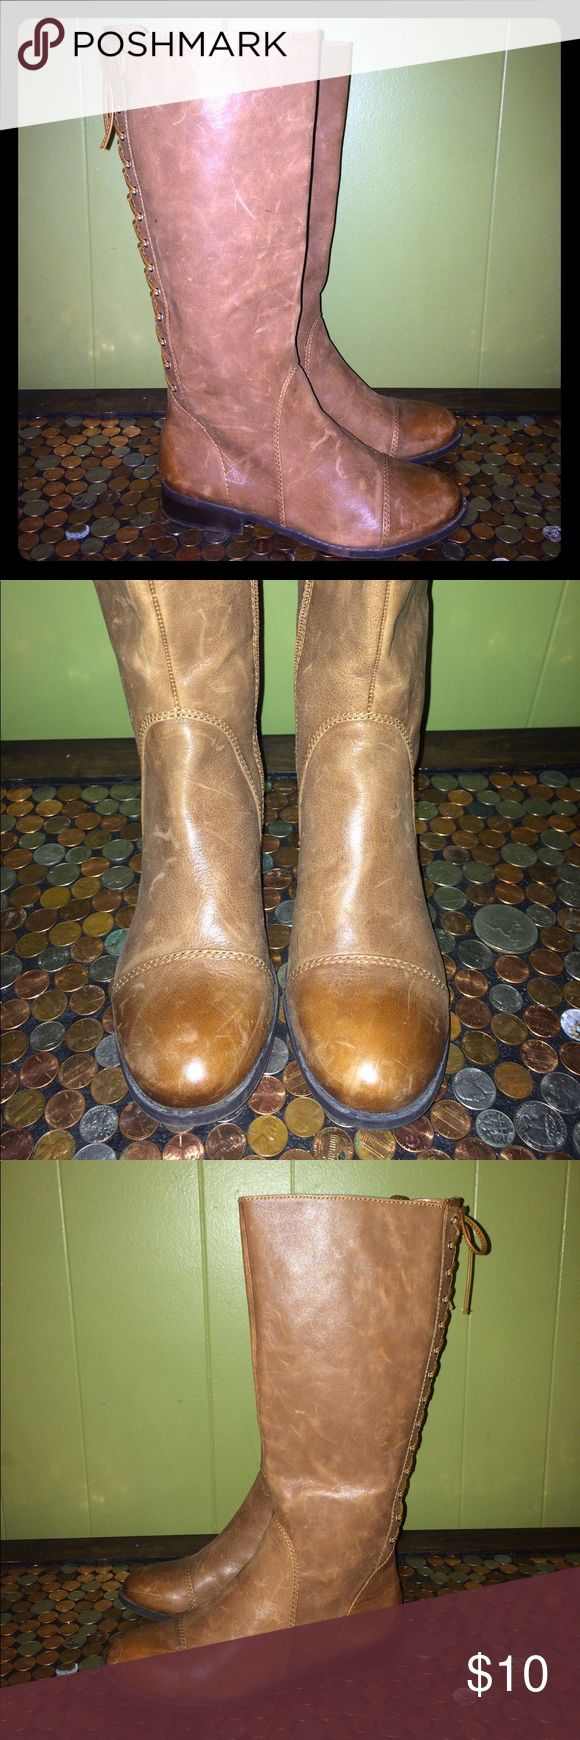 Jessica Simpson Brown Rear Lace Knee High Boot 7 Jessica Simpson Brown Leather Rear Faux Lace Knee High Boot. Ladies Size 7. Inner Leg Zip. Good Clean Condition, Lots Of Wear Left. Questions Welcome Thanks For Looking. Jessica Simpson Shoes Combat & Moto Boots